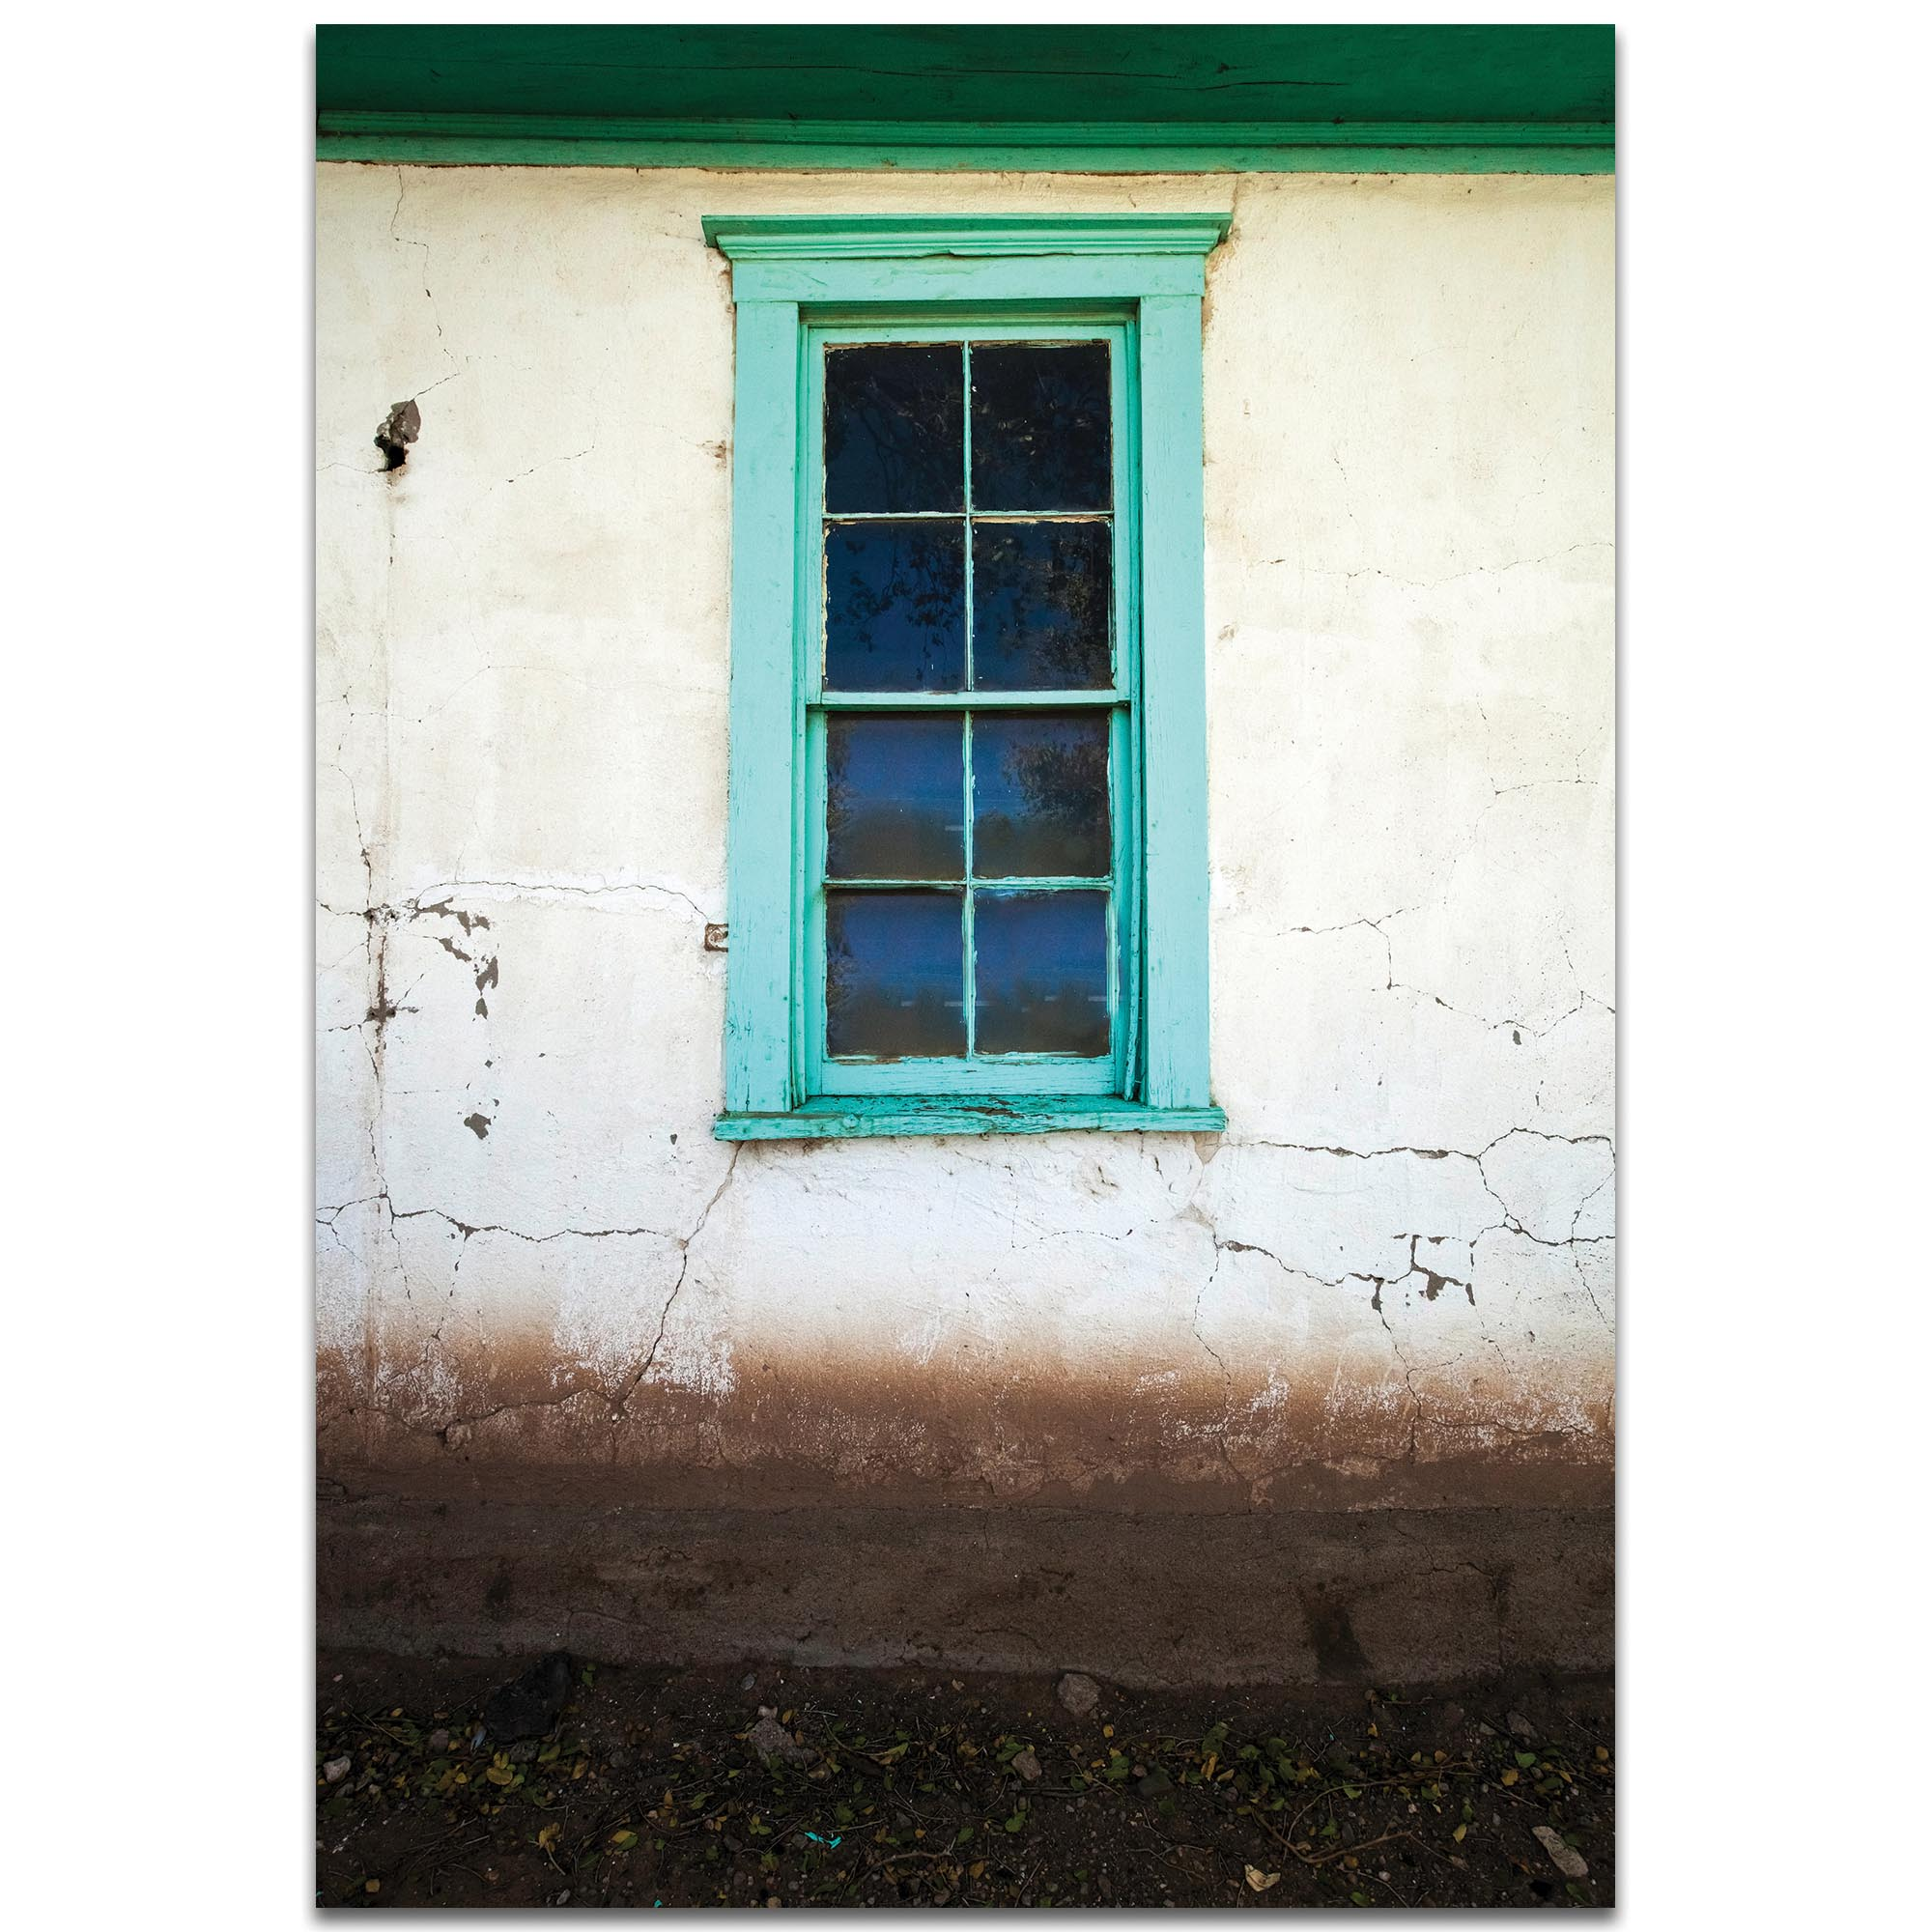 Eclectic Wall Art 'Bay Window' - Architecture Decor on Metal or Plexiglass